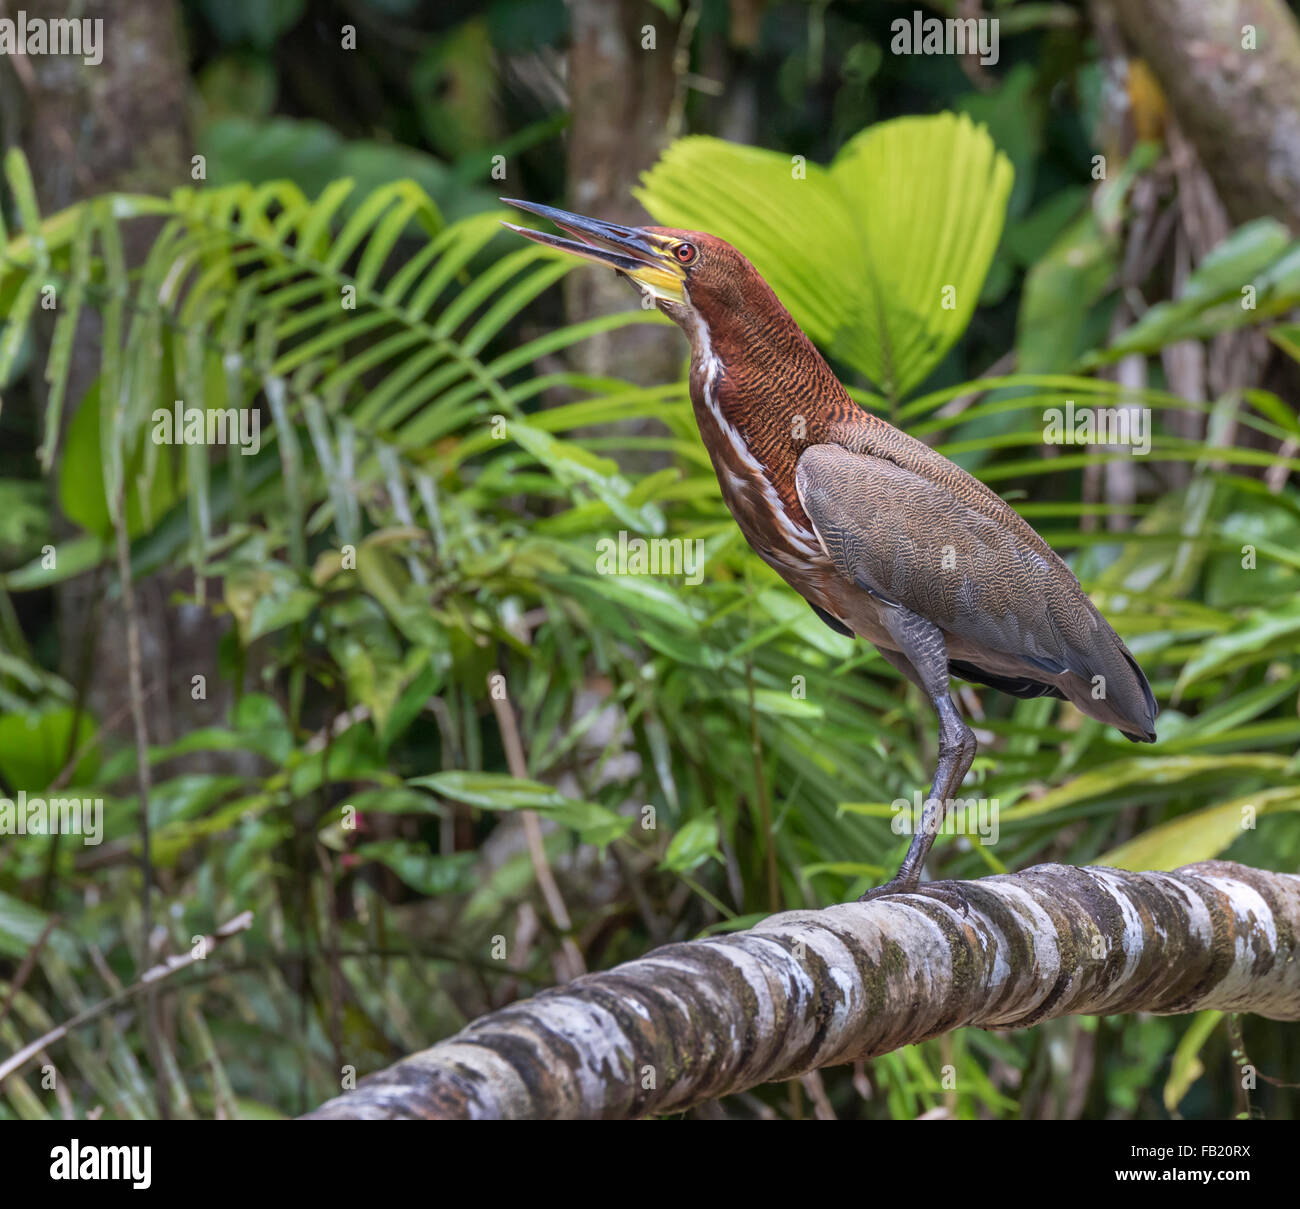 Rufescent tiger heron (Tigrisoma lineatum) in rainforest, Pacaya Samiria National Reserve, Yanayacu River, Amazon Stock Photo